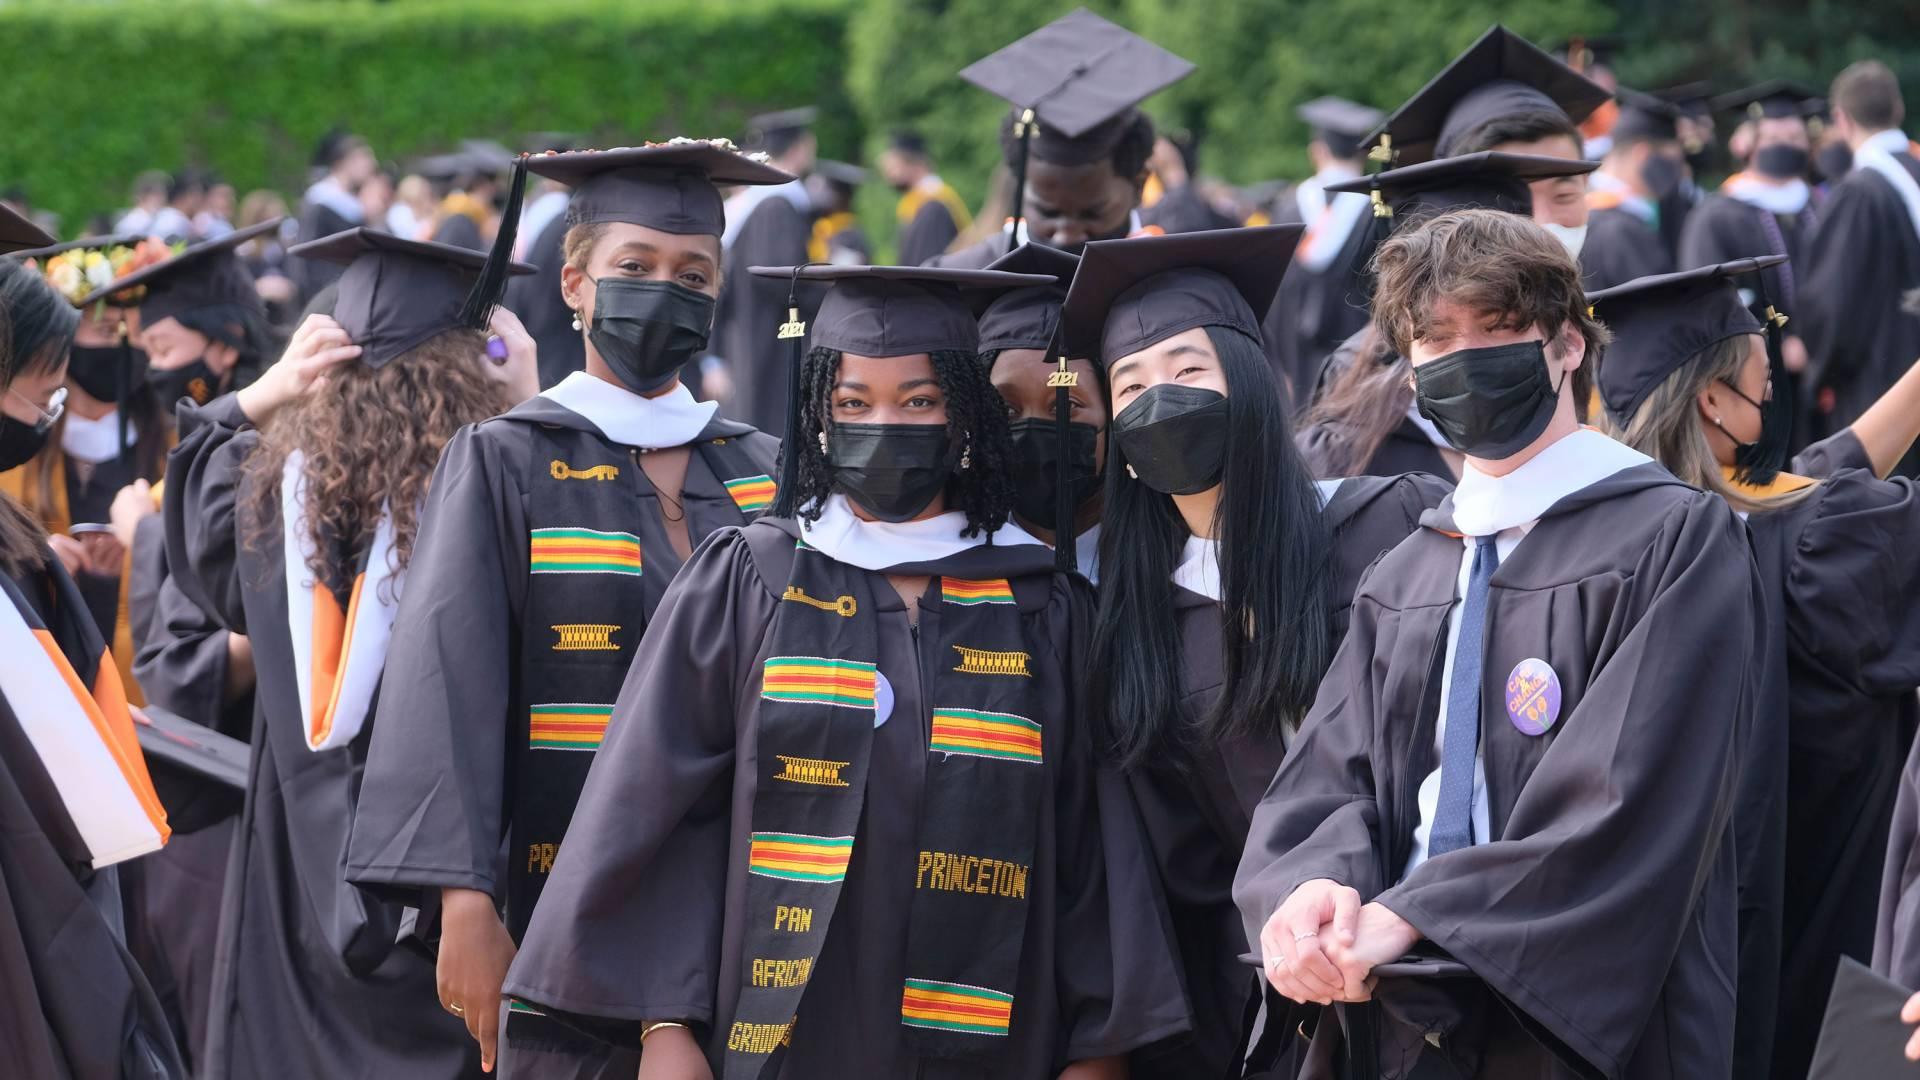 Graduating seniors in mortarboards and gowns